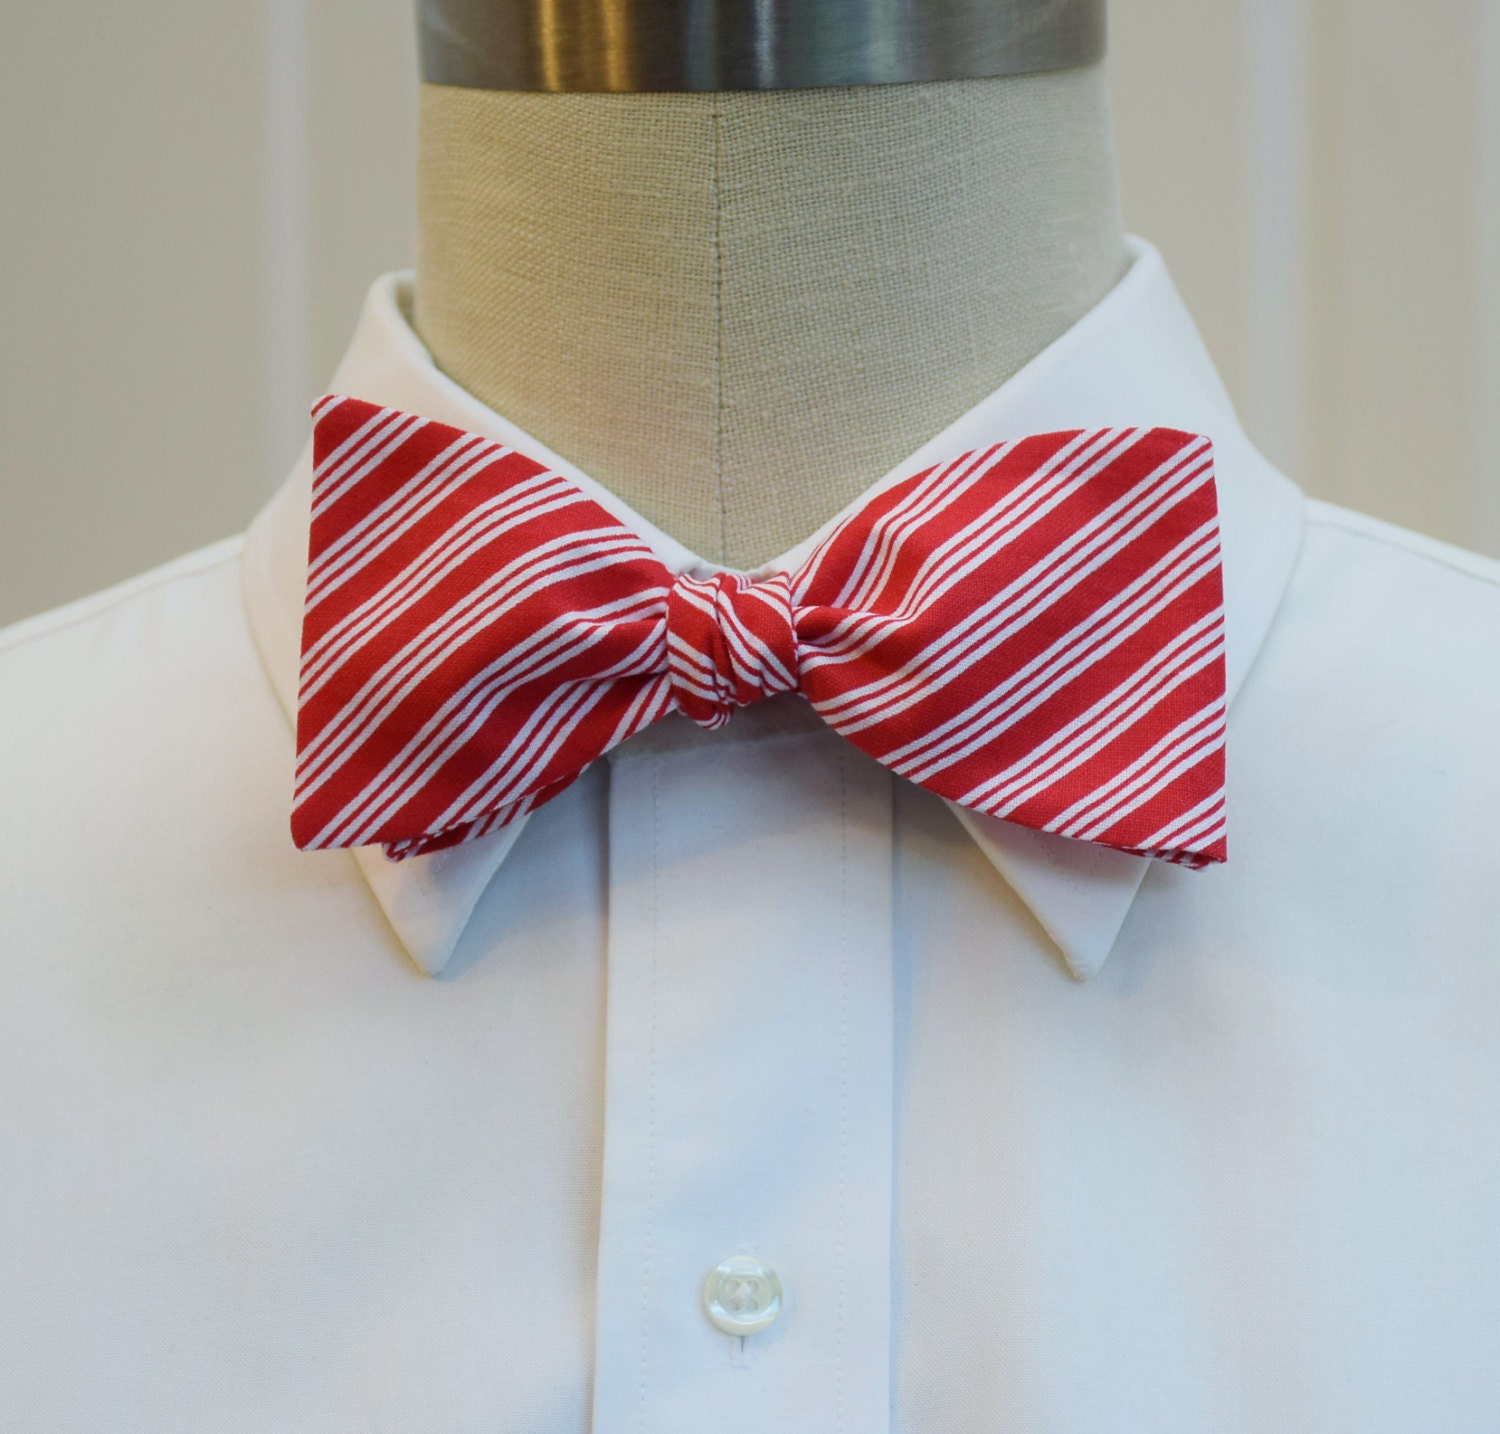 mens bow tie redwhite stripes bow tie candy cane stripes bow tie christmas bow tie groomsmen gift holiday bow tie festive bow tie